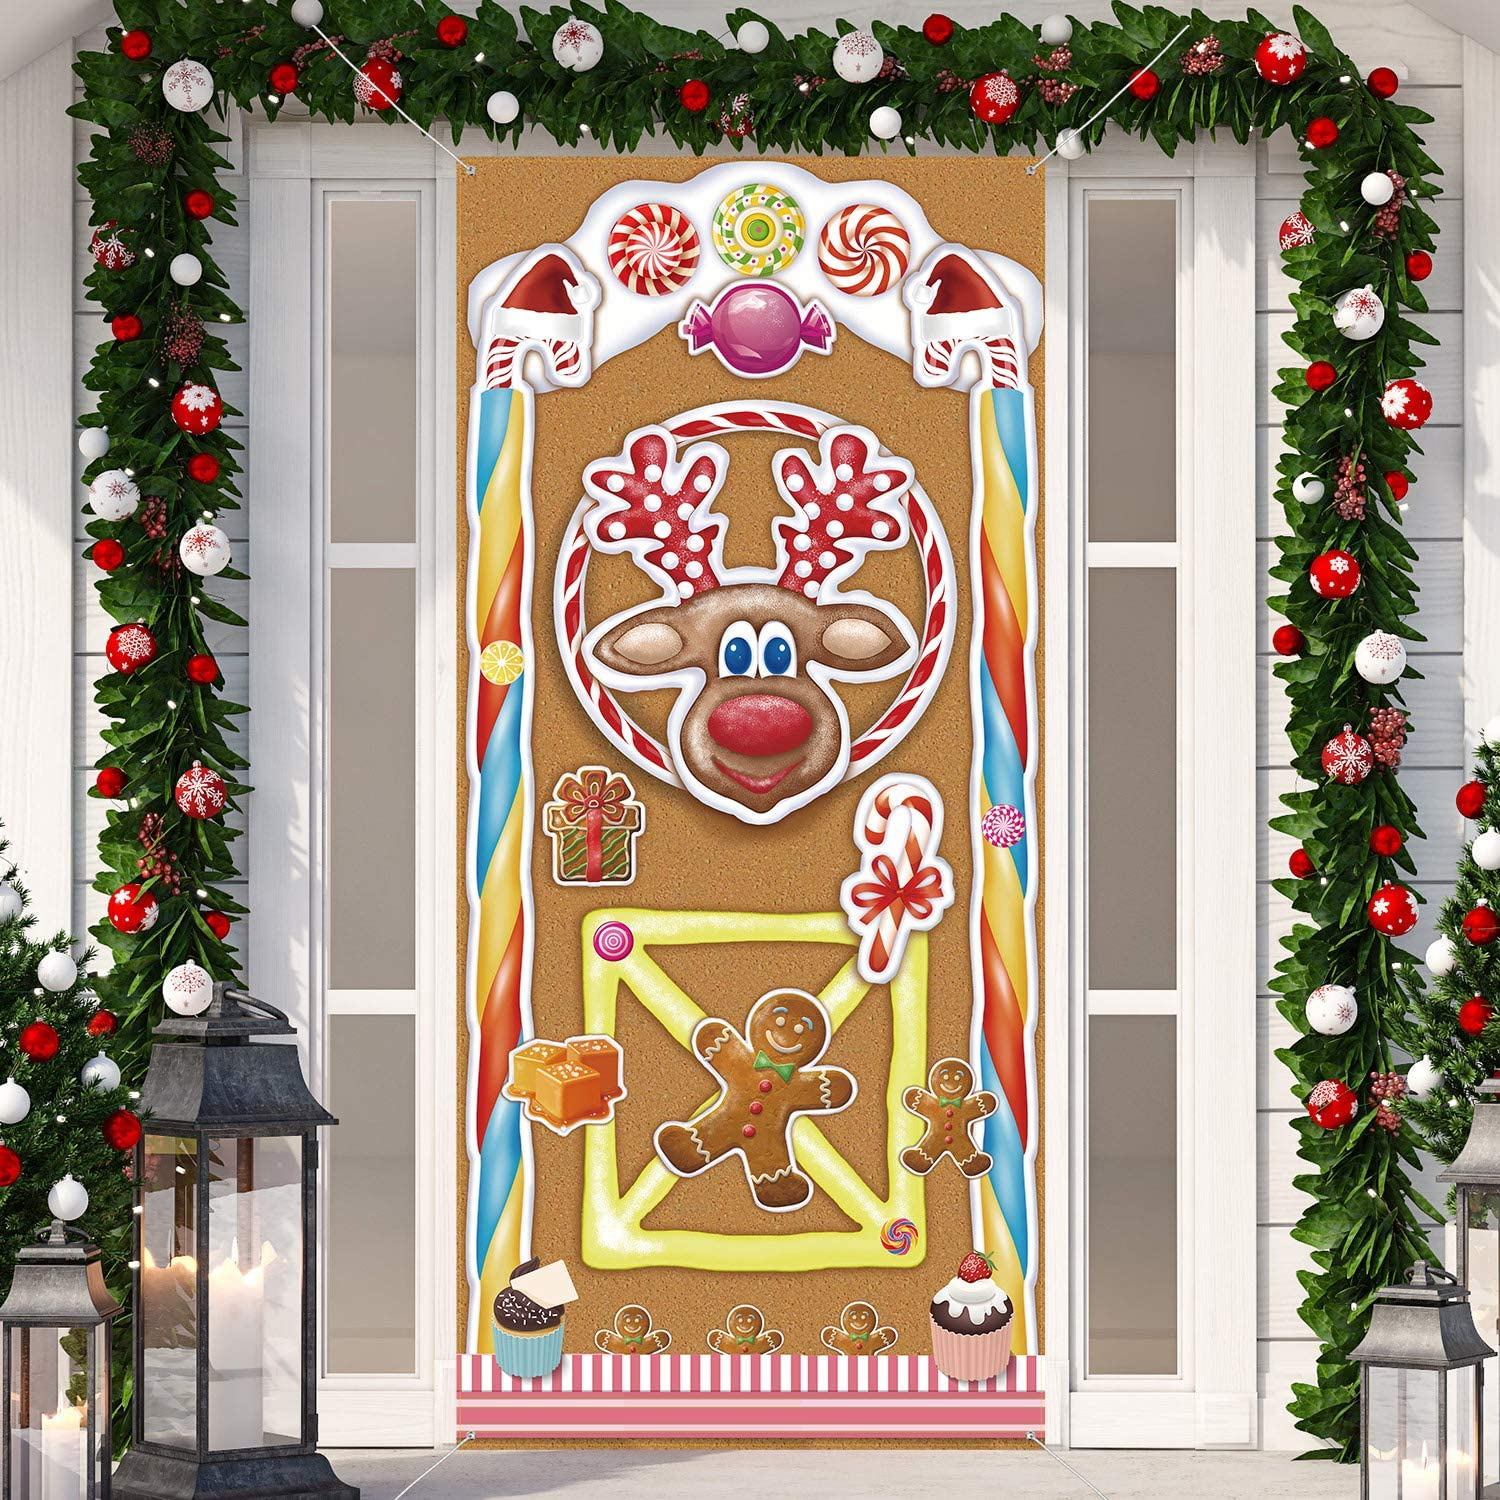 Christmas Decorations, Large Fabric Colorful Gingerbread House Door Cover, Gingerbread House Door Banner Christmas Door Cover for Holiday Winter Christmas Party Theme Supplies